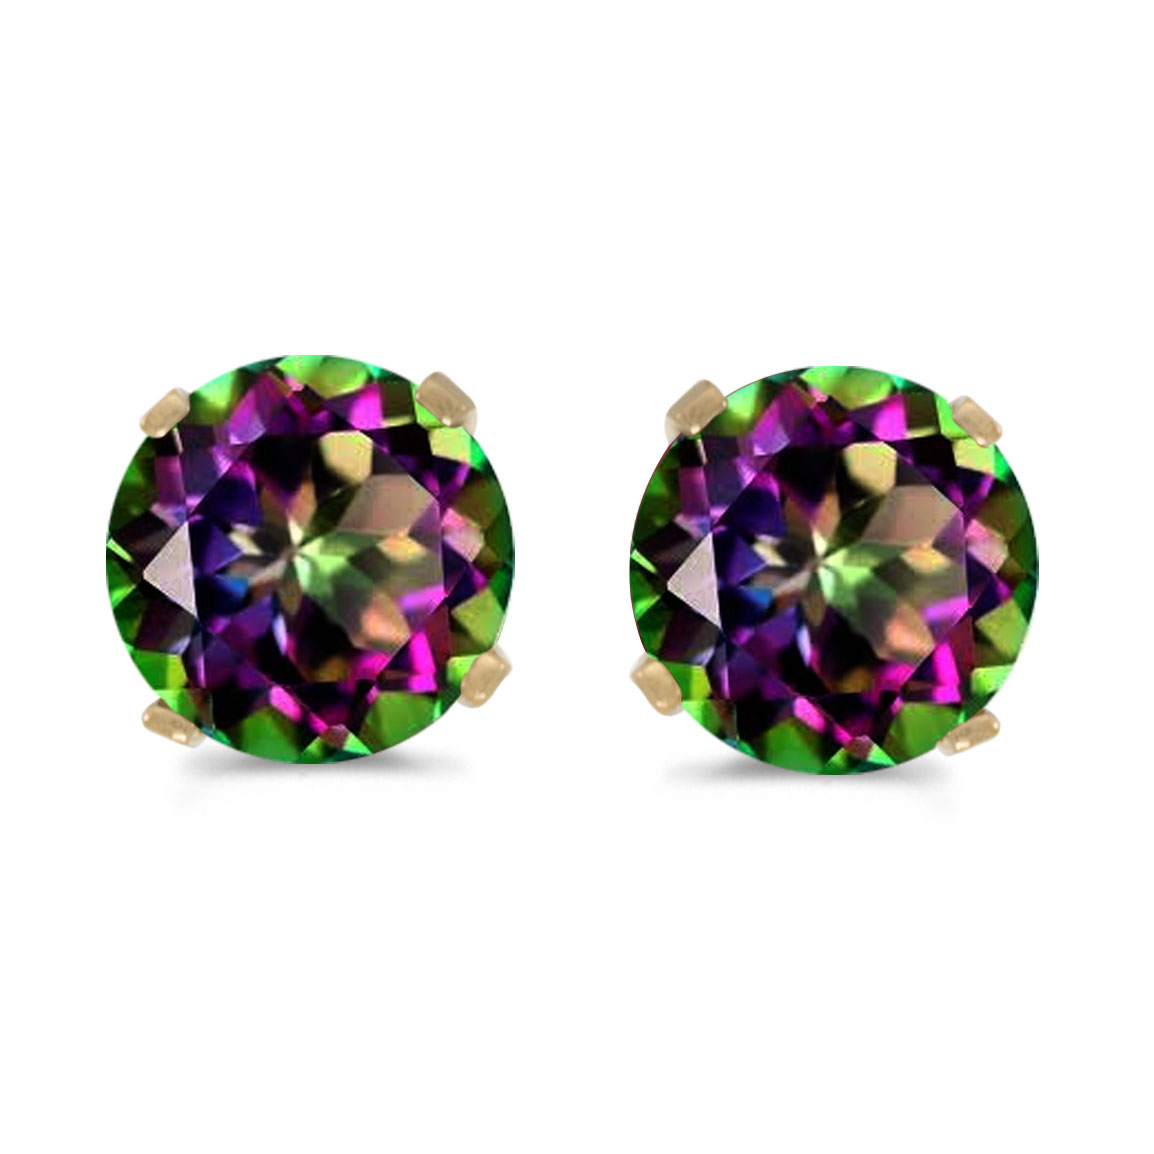 5mm Round Mystic Topaz Stud Earrings Set in 14k Yellow Gold by